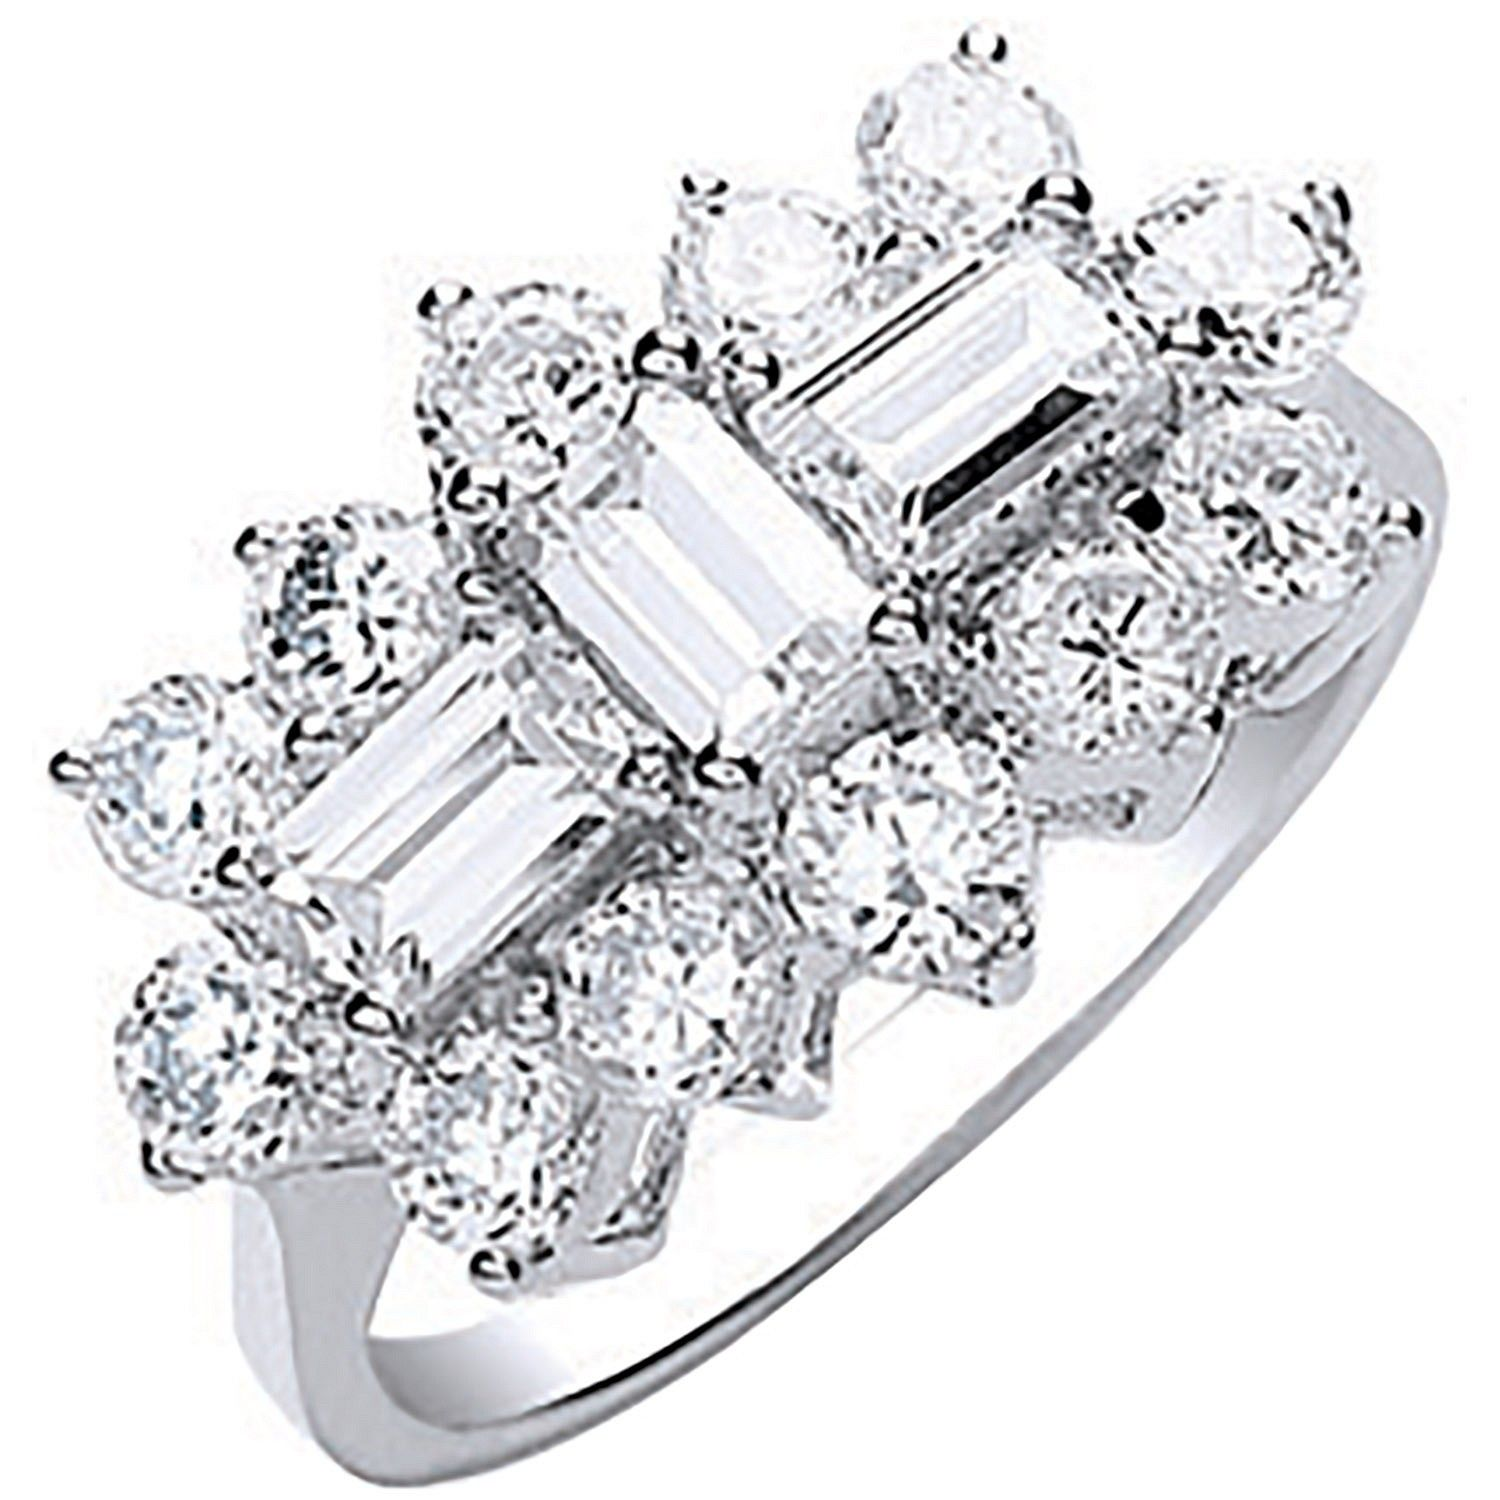 9ct Gold Cz Boat Ring